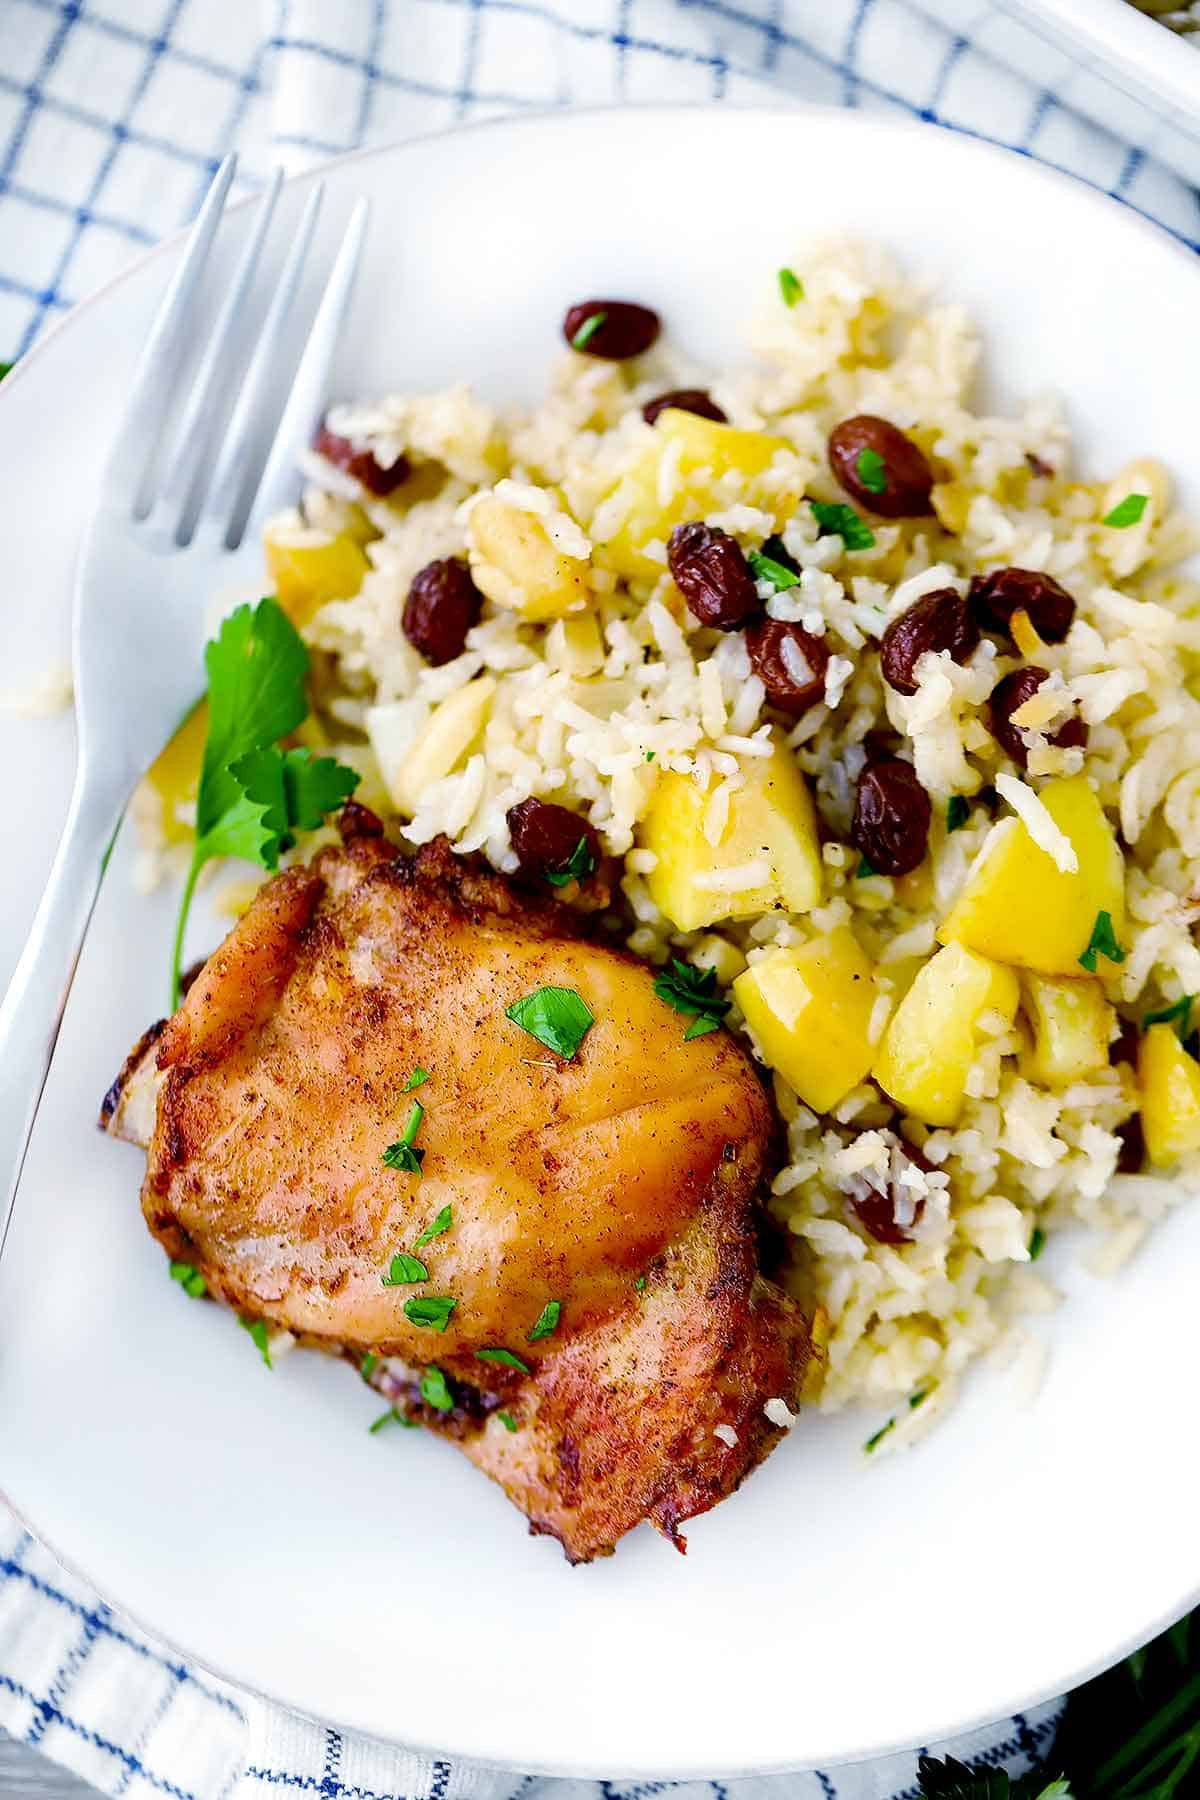 A white plate with a chicken thigh and rice with raisins and apples.